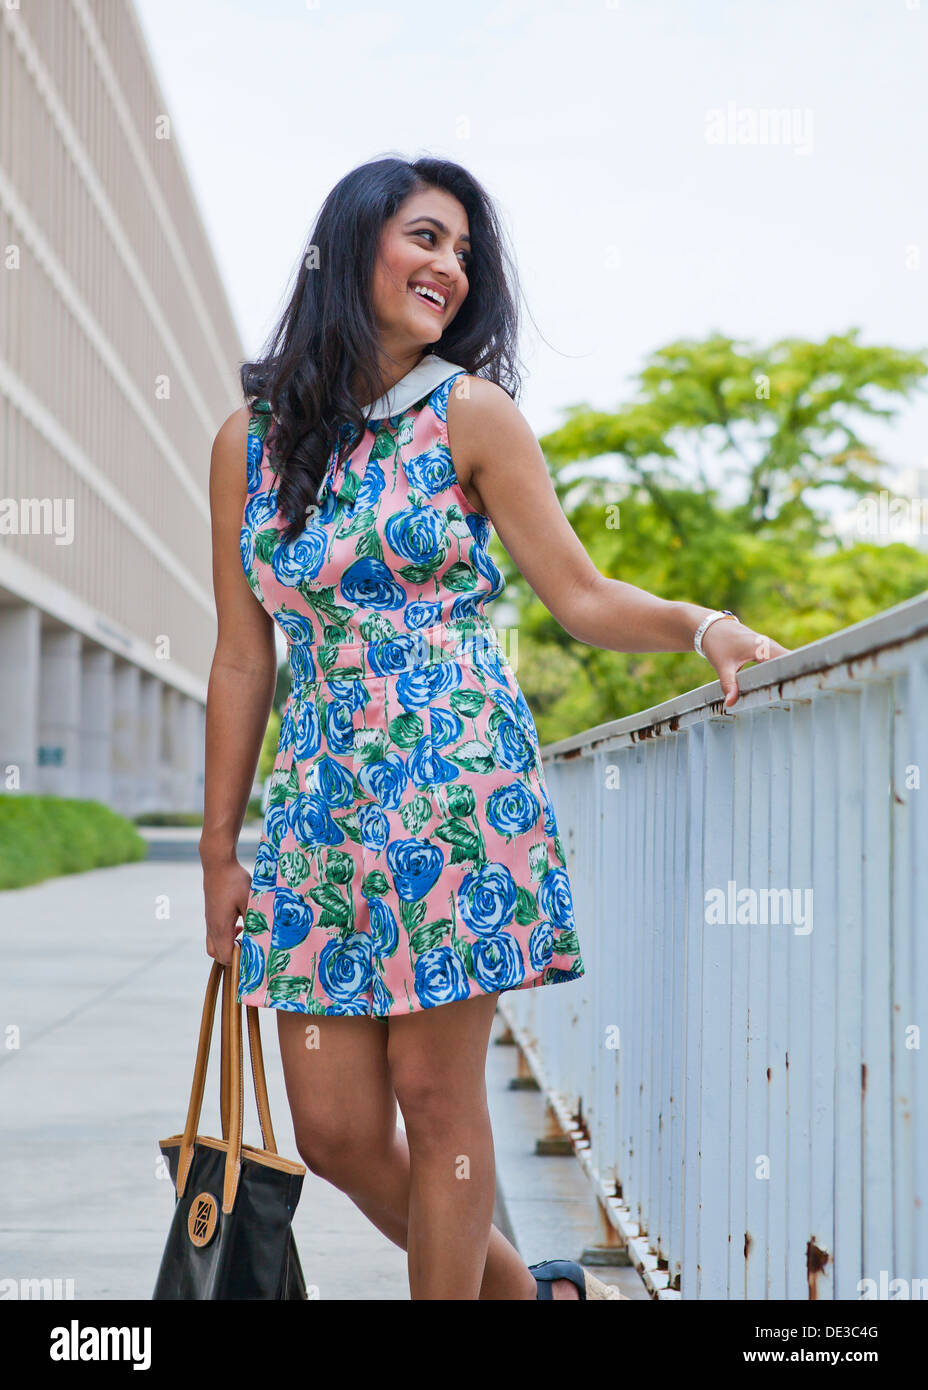 Young woman in urban environment wearing floral pattern one-piece dress - Stock Image